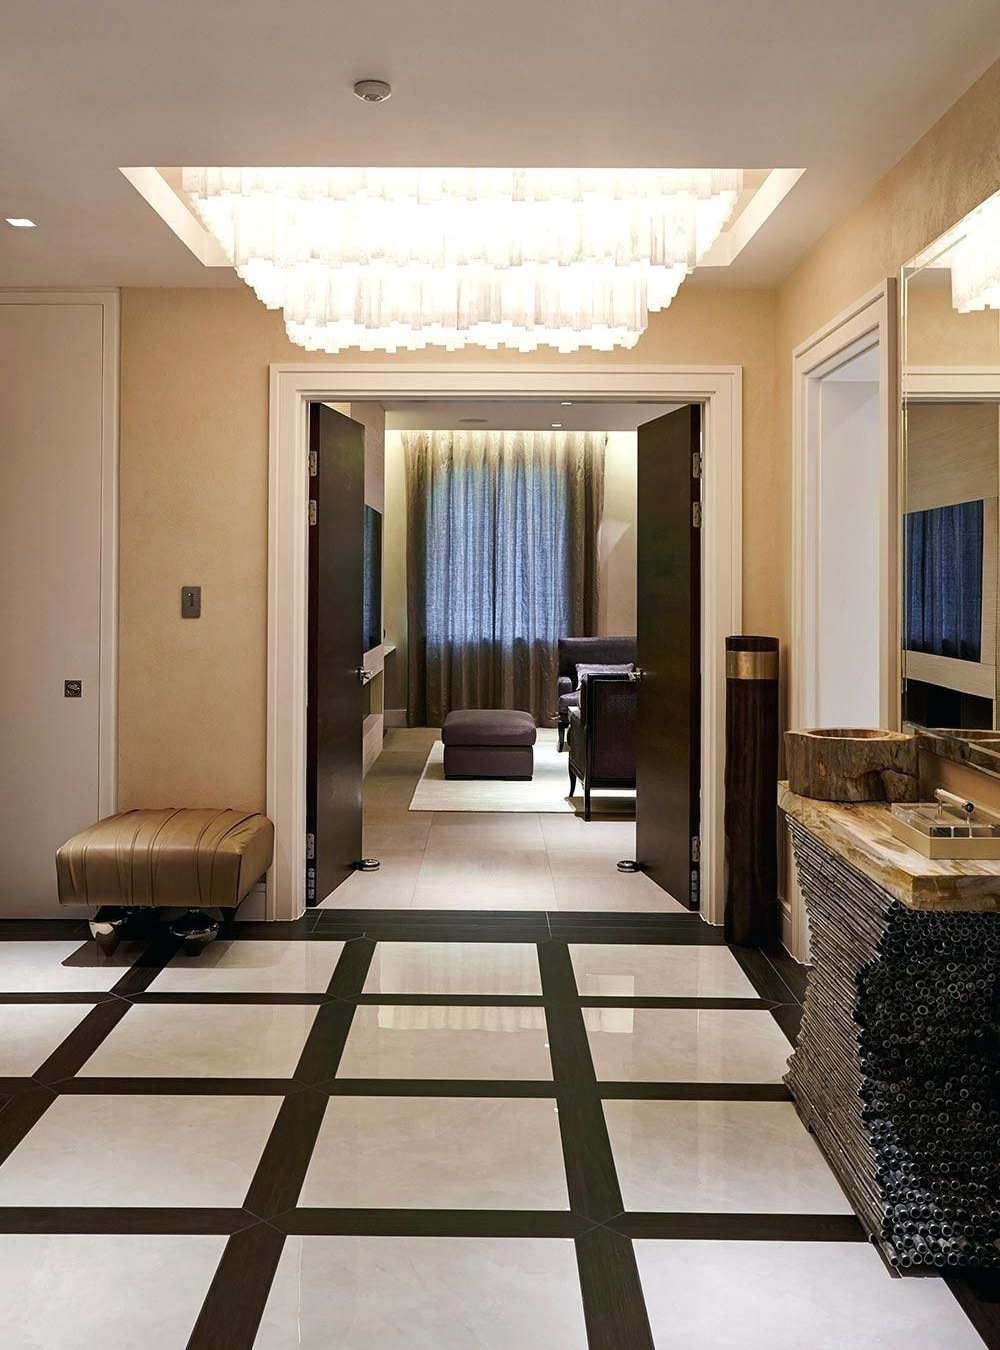 entryway lighting ideas 22 Outrageously Stunning Entryway Lighting Ideas 22 Outrageously Stunning Entryway Lighting Ideas 1 20